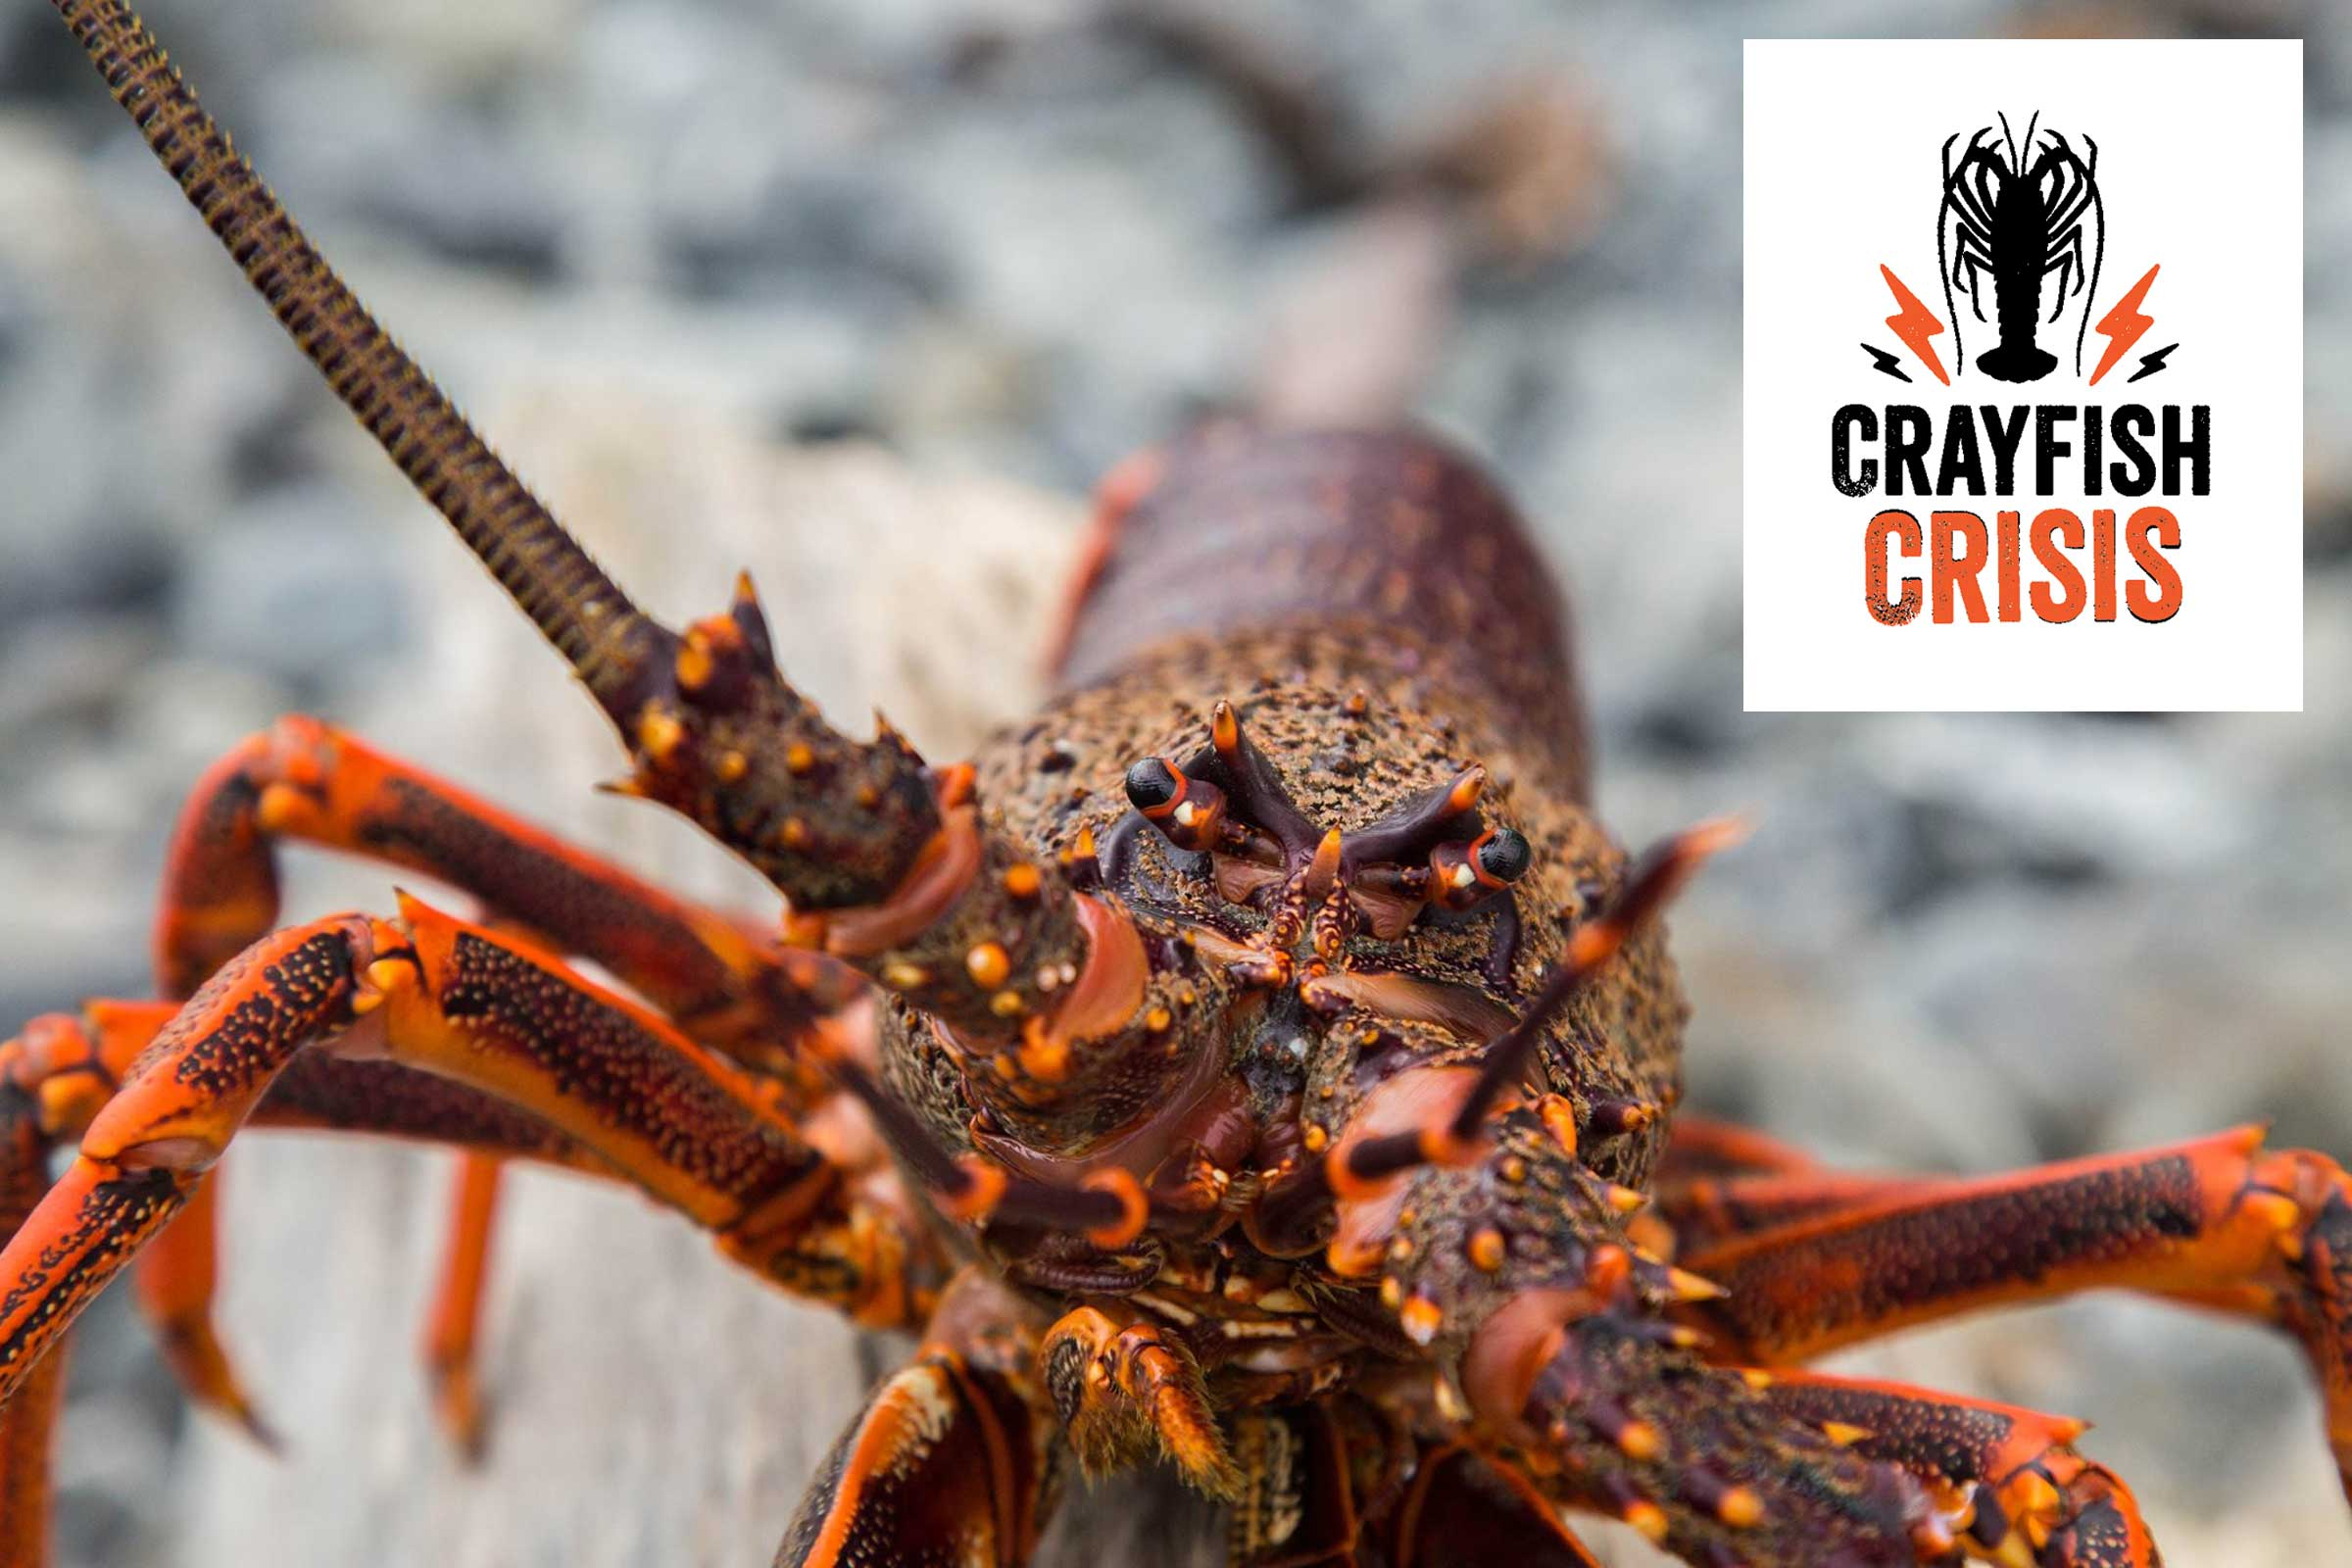 LegaSea - Voluntary Crayfish Bag Limit Reduction